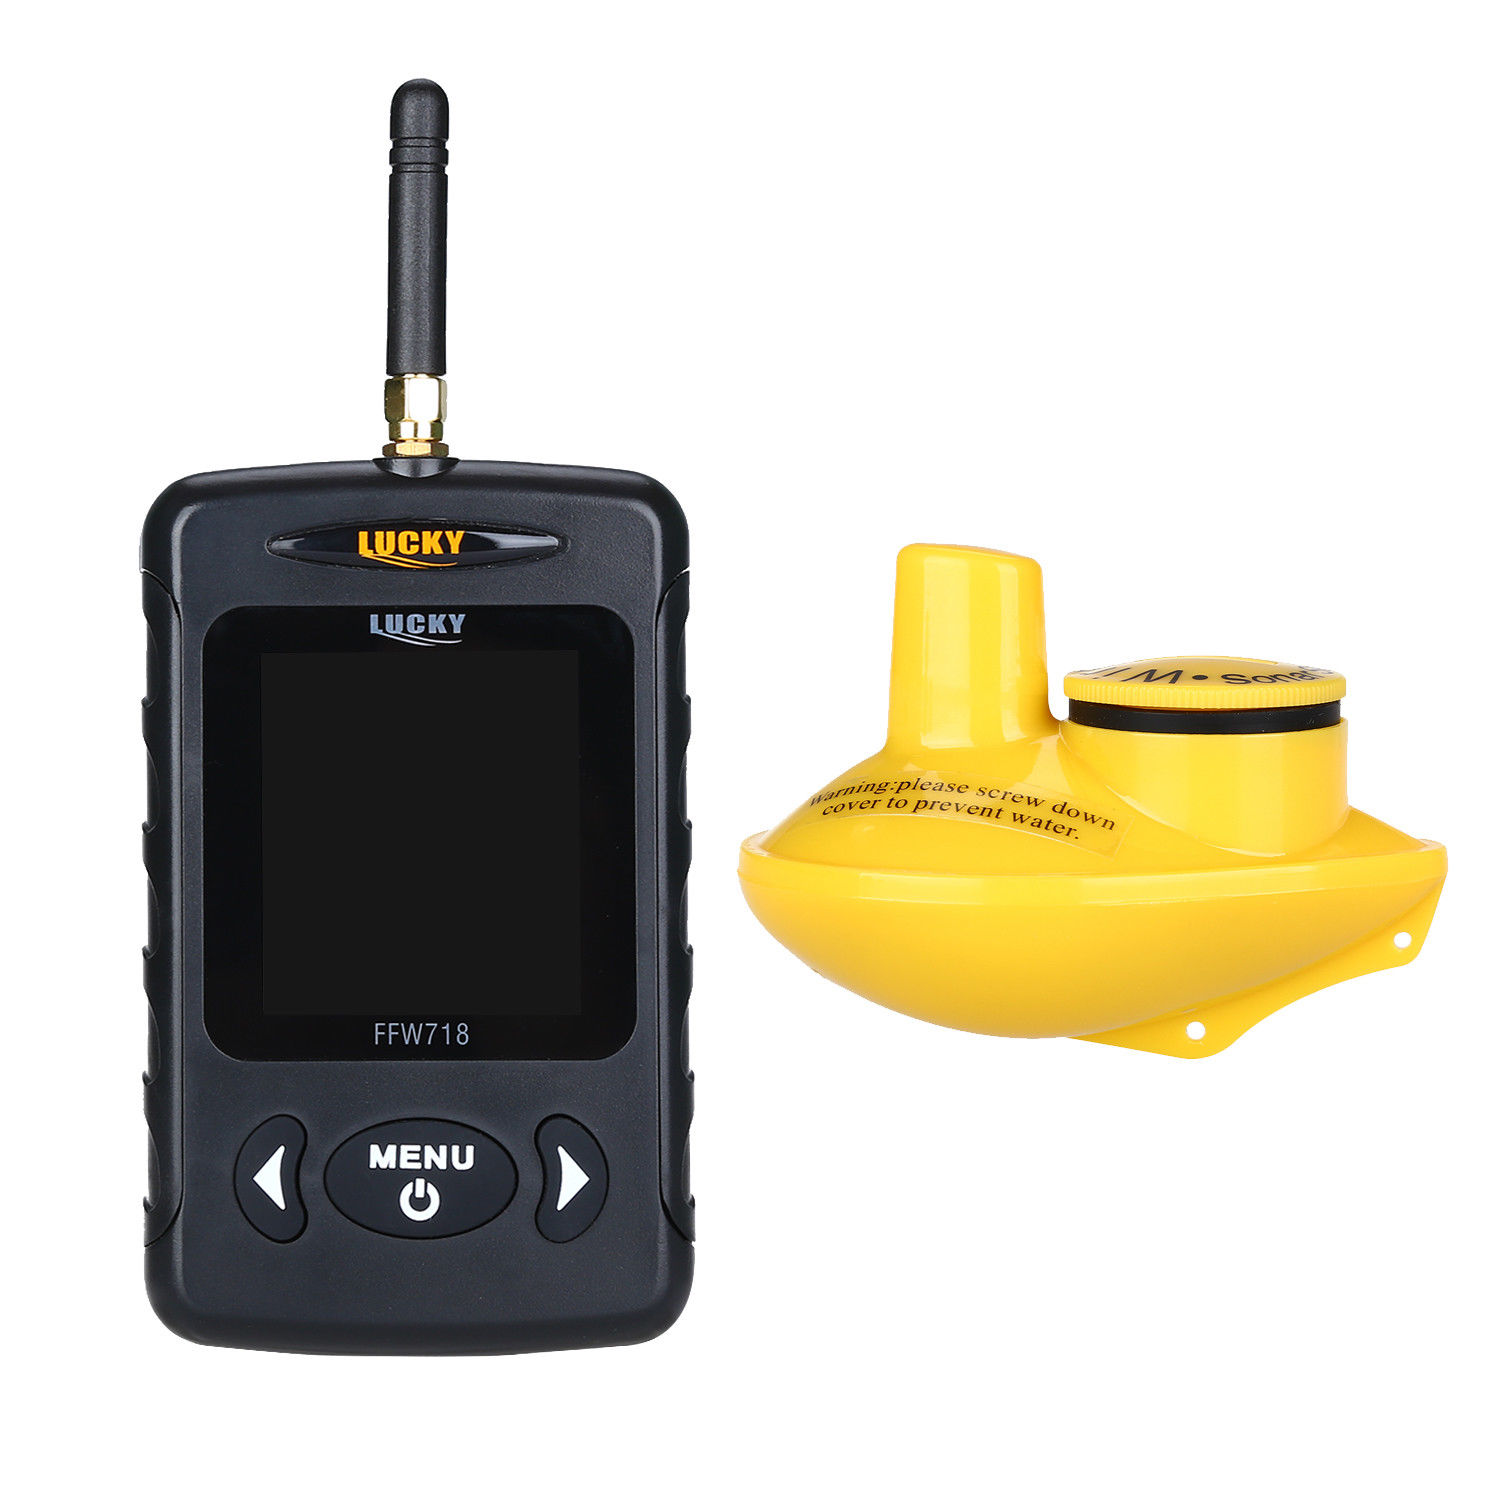 Image 3 - LUCKY FFW718 Wireless Russian Fish Finder Underwater 45M/135FT White LED Sonar Depth Sounder Alarm Ocean River Lake Sea Fishing-in Fish Finders from Sports & Entertainment